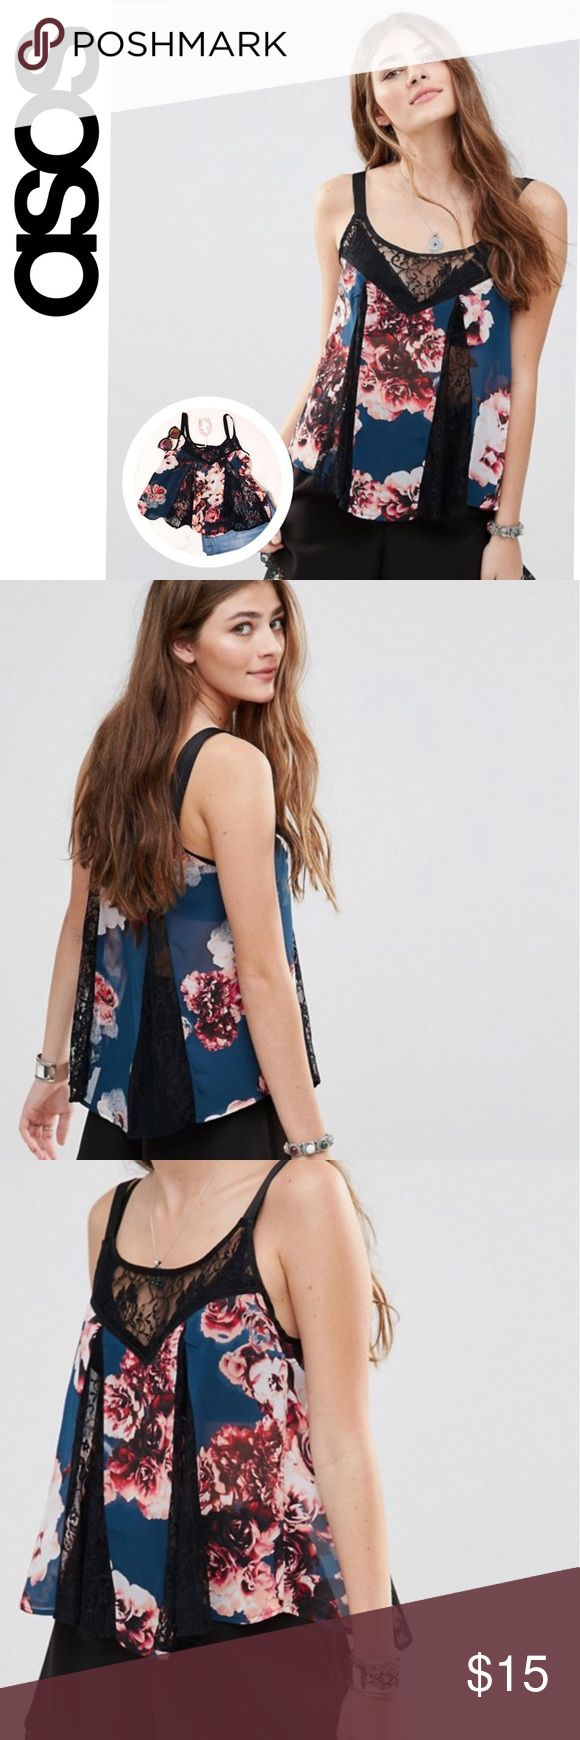 Band of Gypsies (UO) Floral Cami w/ Lace Inserts ▪️Band of Gypsies (Urban Outfitters & Asos brand) sheer floral cami with Lace inserts ▪️size: S ▪️condition: new with tags ▪️Perfect for Coachella and any other spring or summer festivals. Super light weight and flowy.  ▪️Currently being sold on Asos online for $31! 🌻Other tags: boho, hippie🌻 Urban Outfitters Tops Camisoles